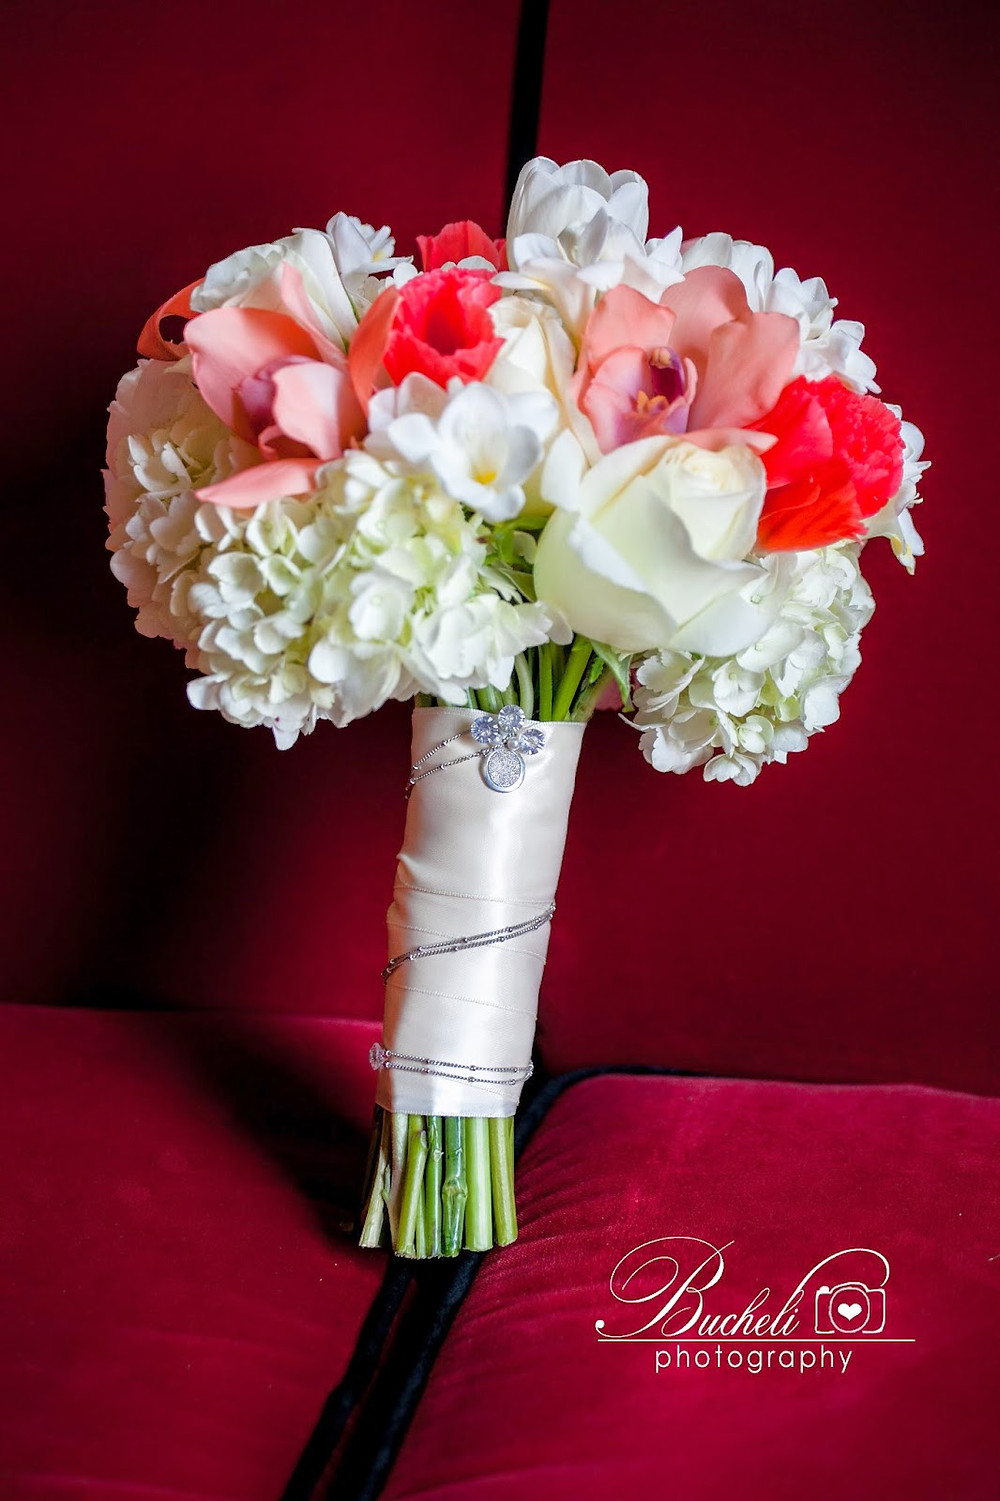 Bridal Bouquet by Visual Impact Design. Bucheli Photography.